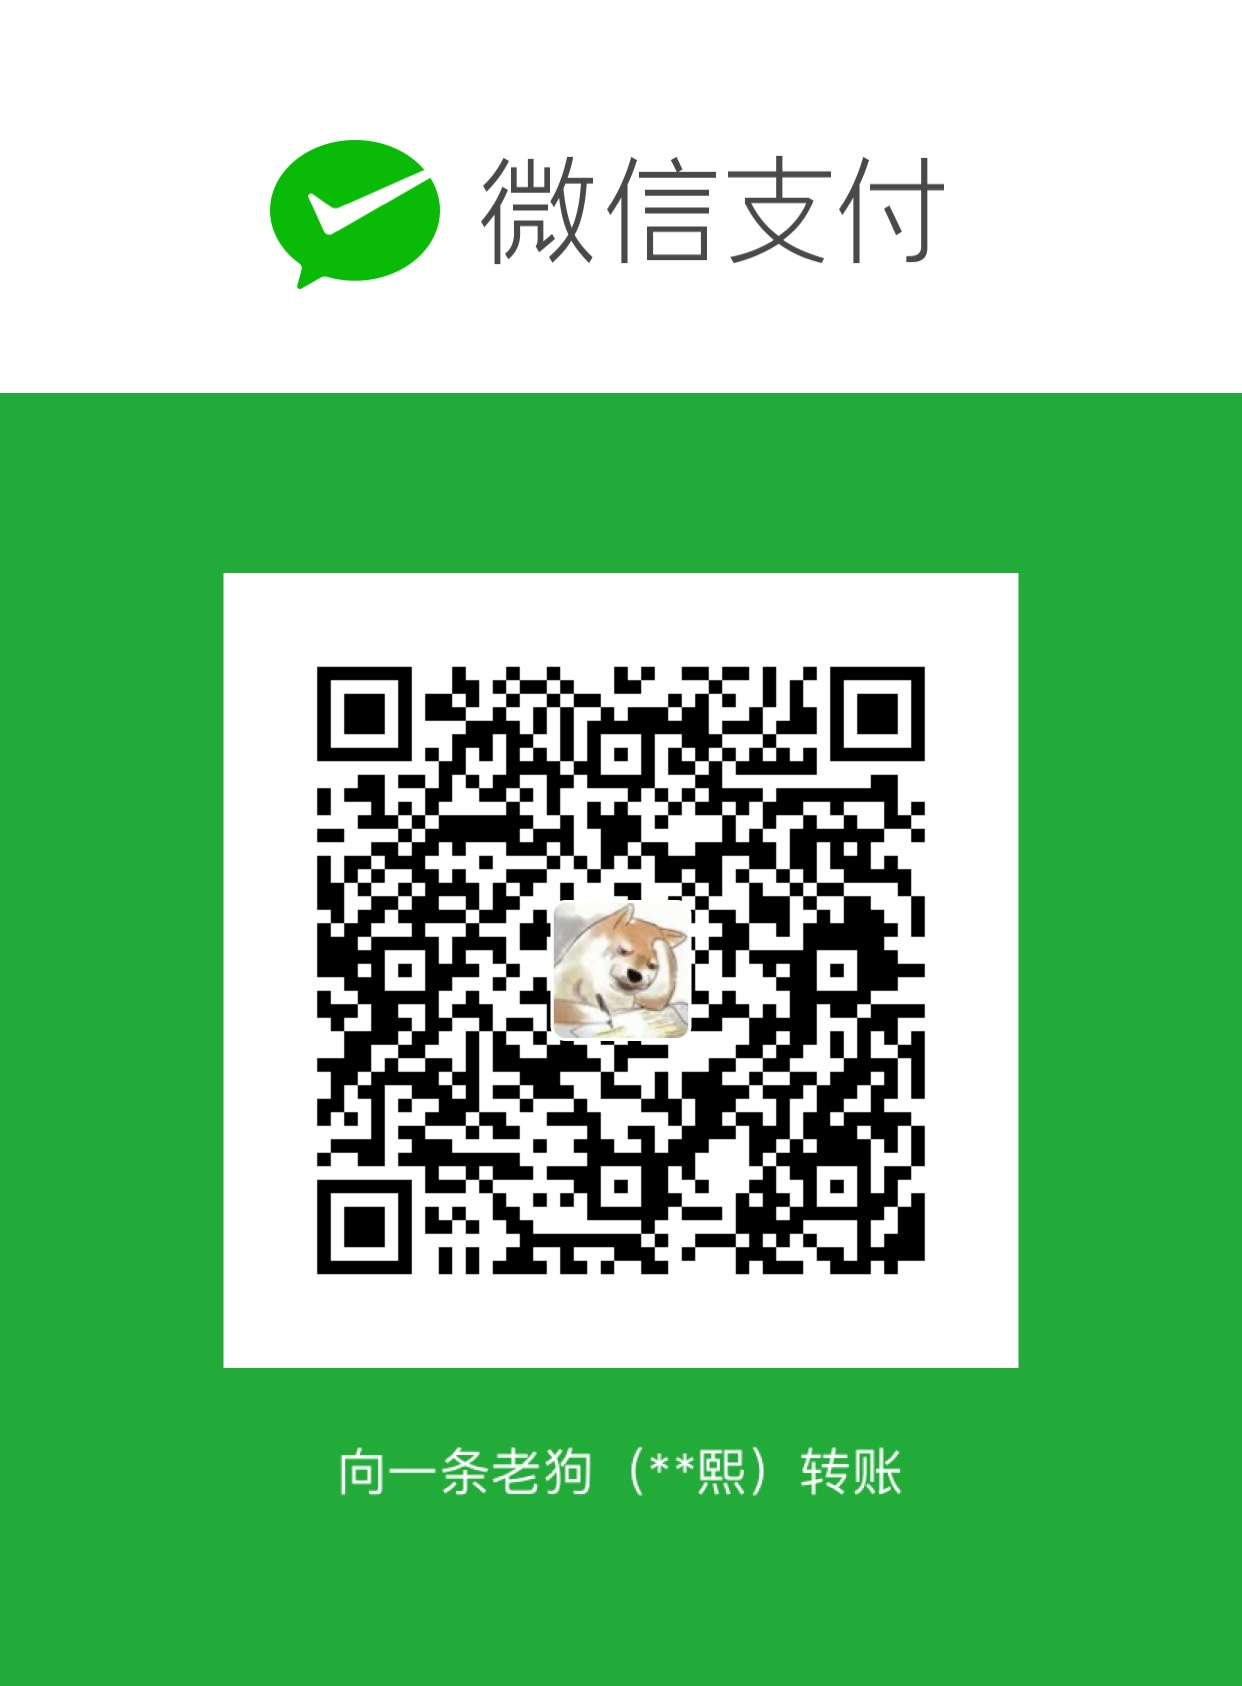 hyperxu WeChat Pay